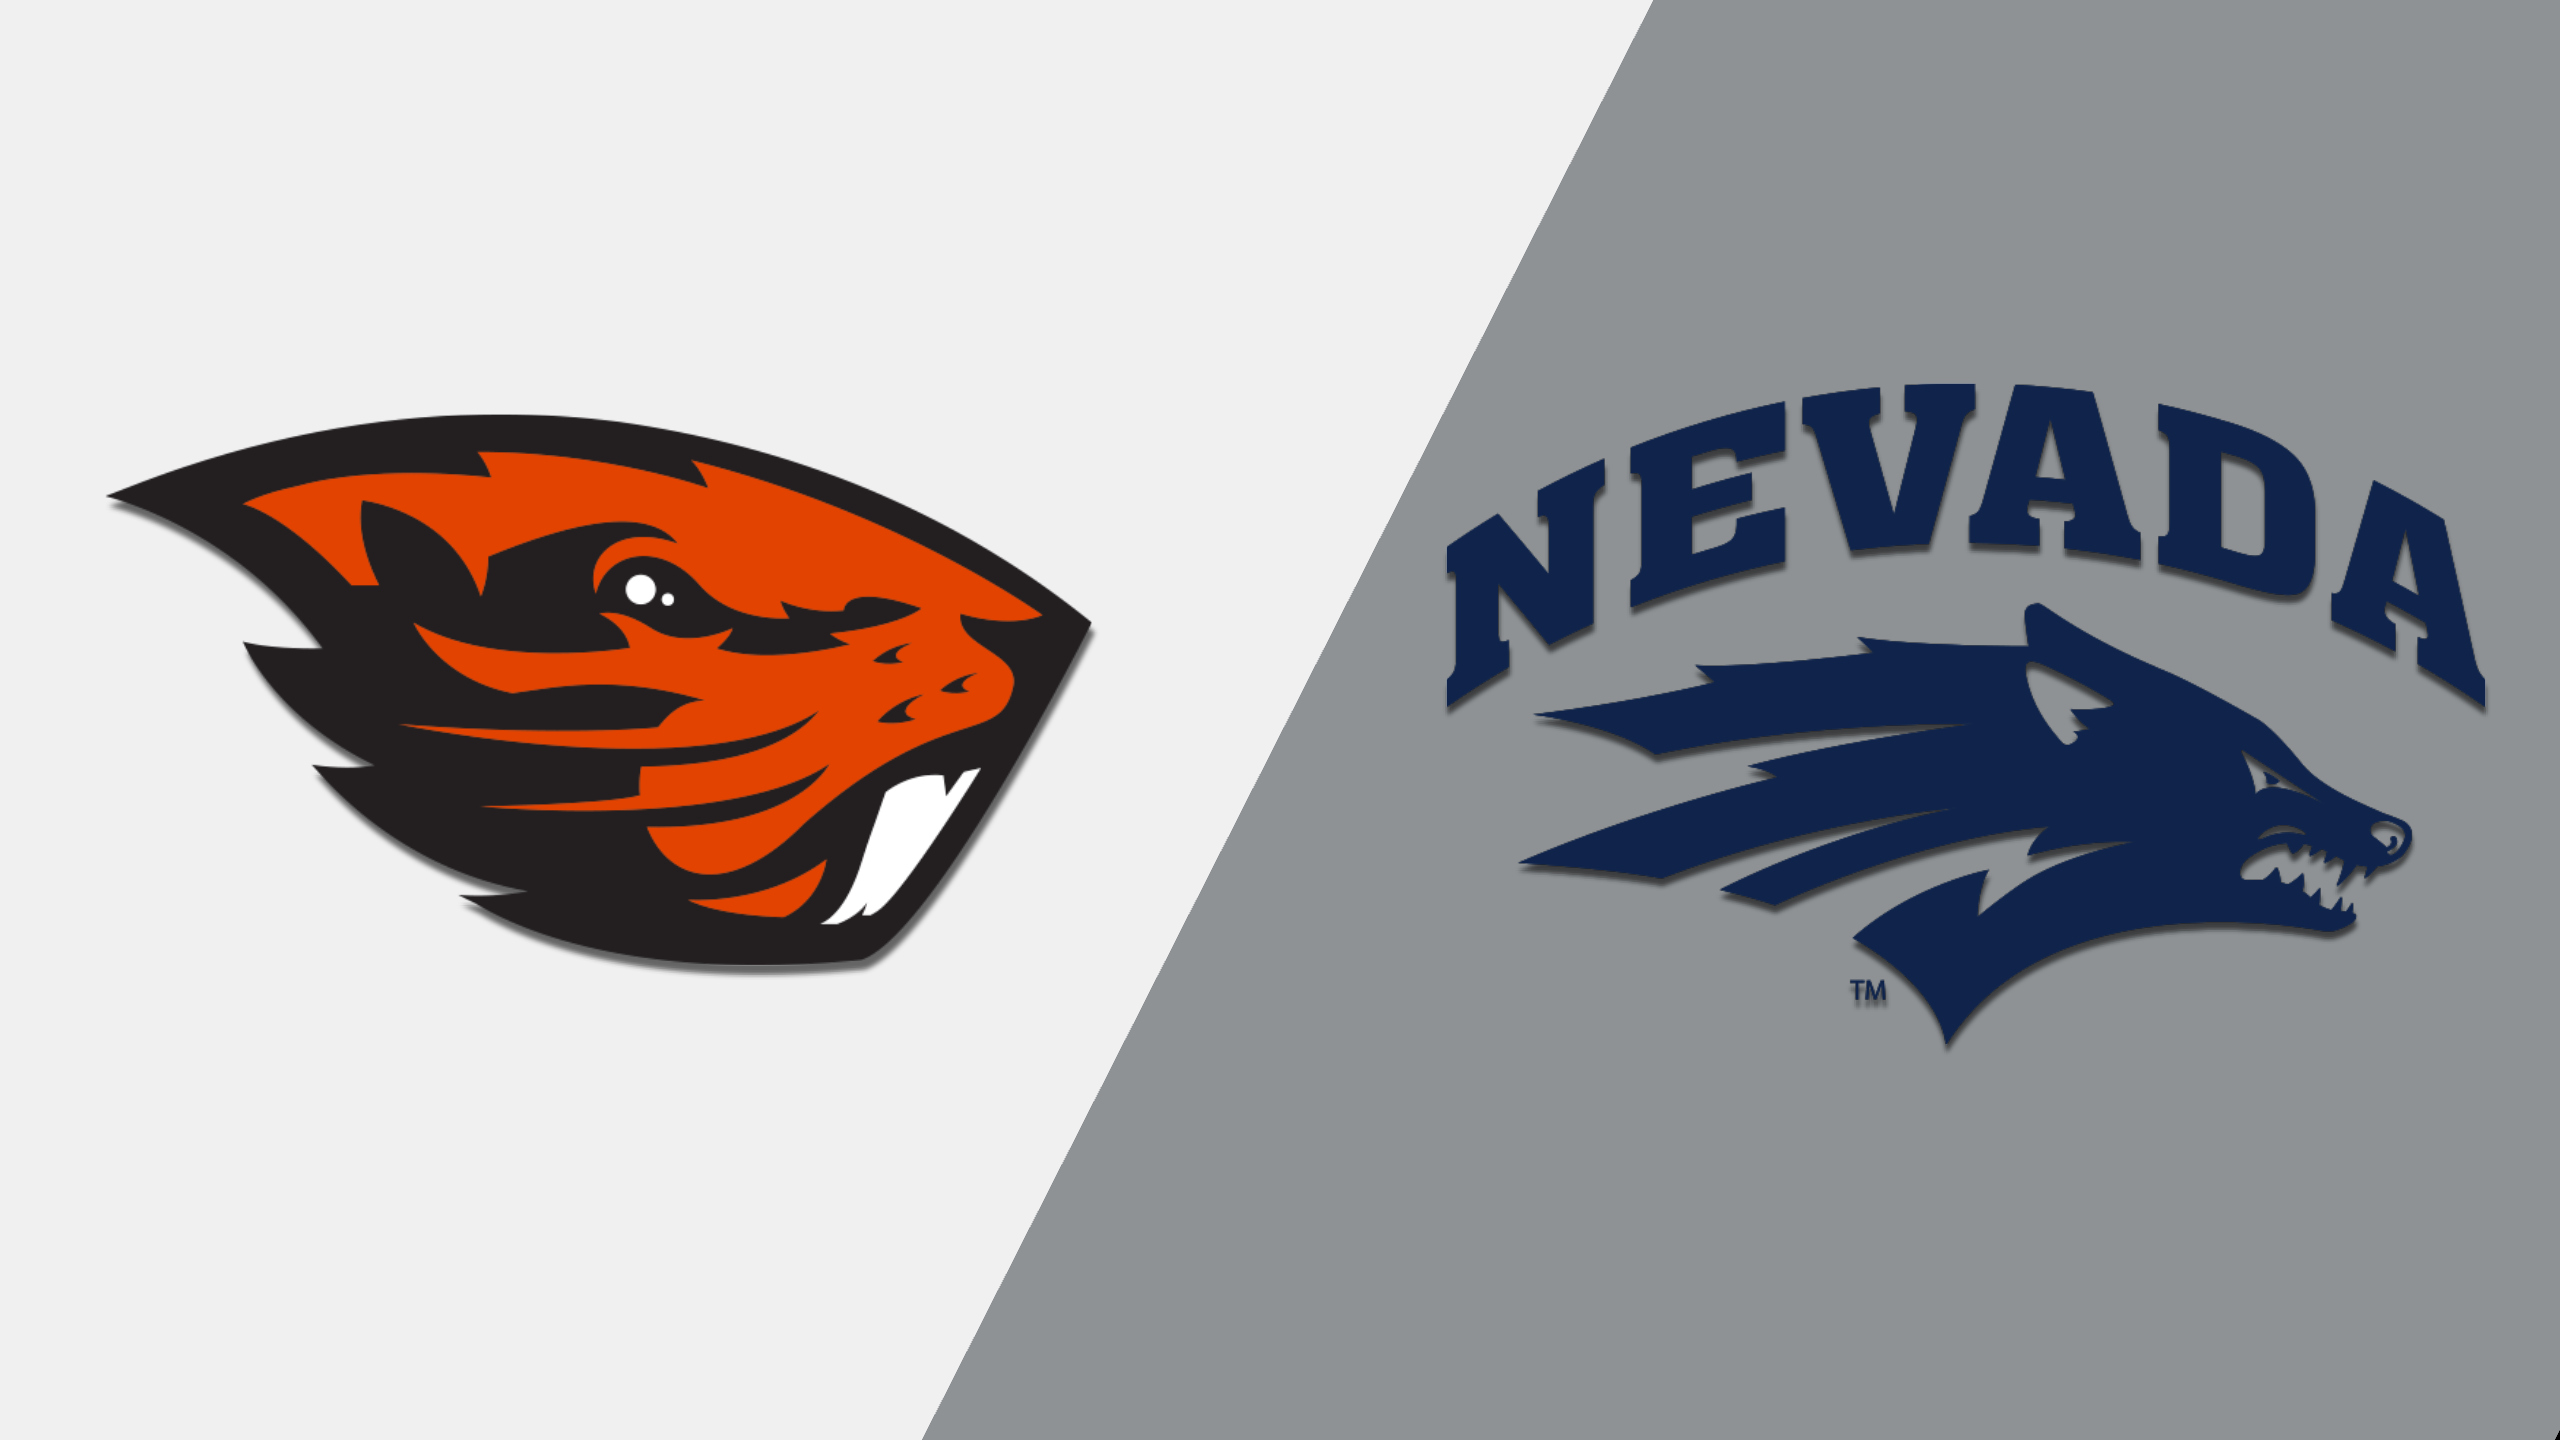 Oregon State vs. Nevada (Football) (re-air)